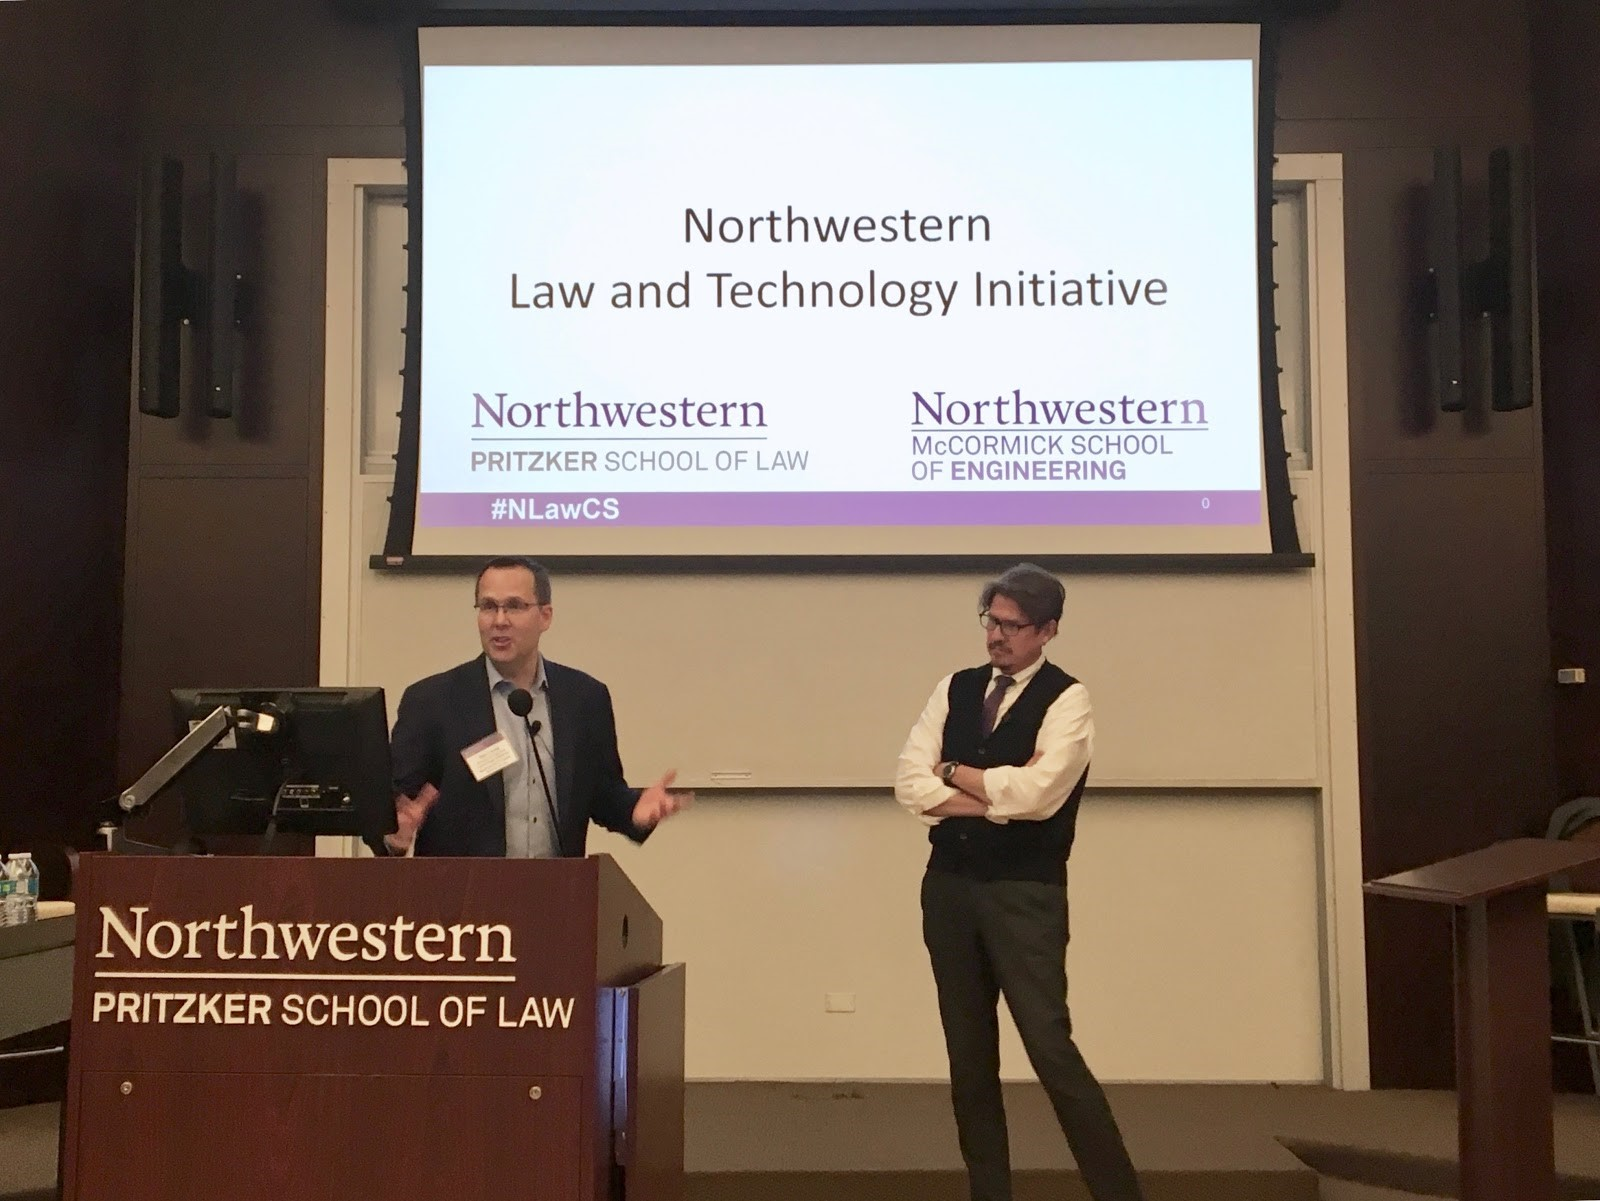 Professors Dan Linna and Kris Hammond kick off the Northwestern Law and Technology Initiative meeting at Northwestern Pritzker School of Law on September 5, 2019.